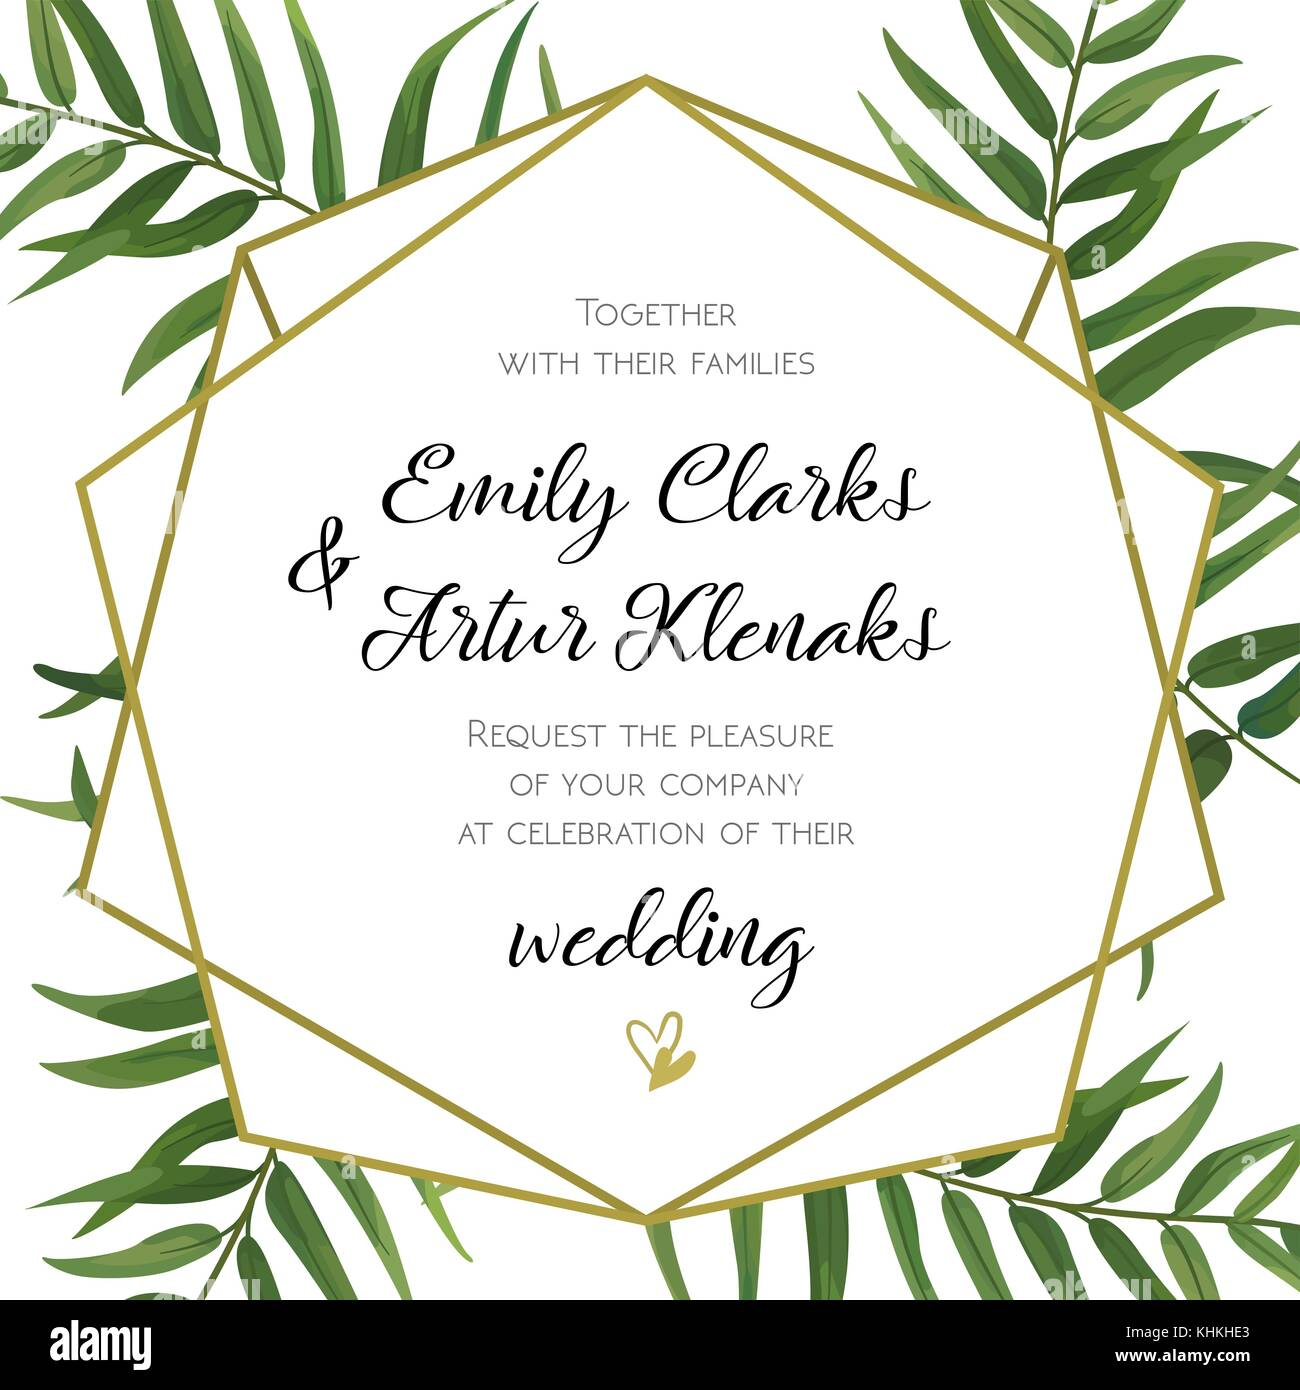 Wedding Invitation Floral Invite Card Design With Green Tropical Forest Palm Tree Leaves Fern Greenery Simple Geometric Golden Border Hexago